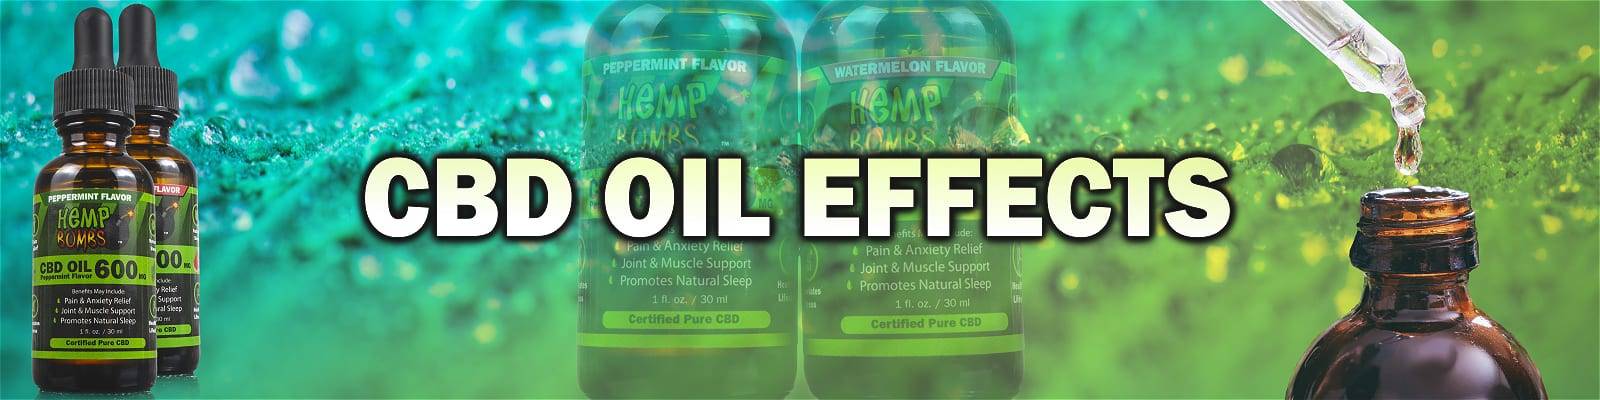 CBD Oil Effects with two bottles of Hemp Bombs CBD Oil and a dropper of CBD Oil on a green/blue background